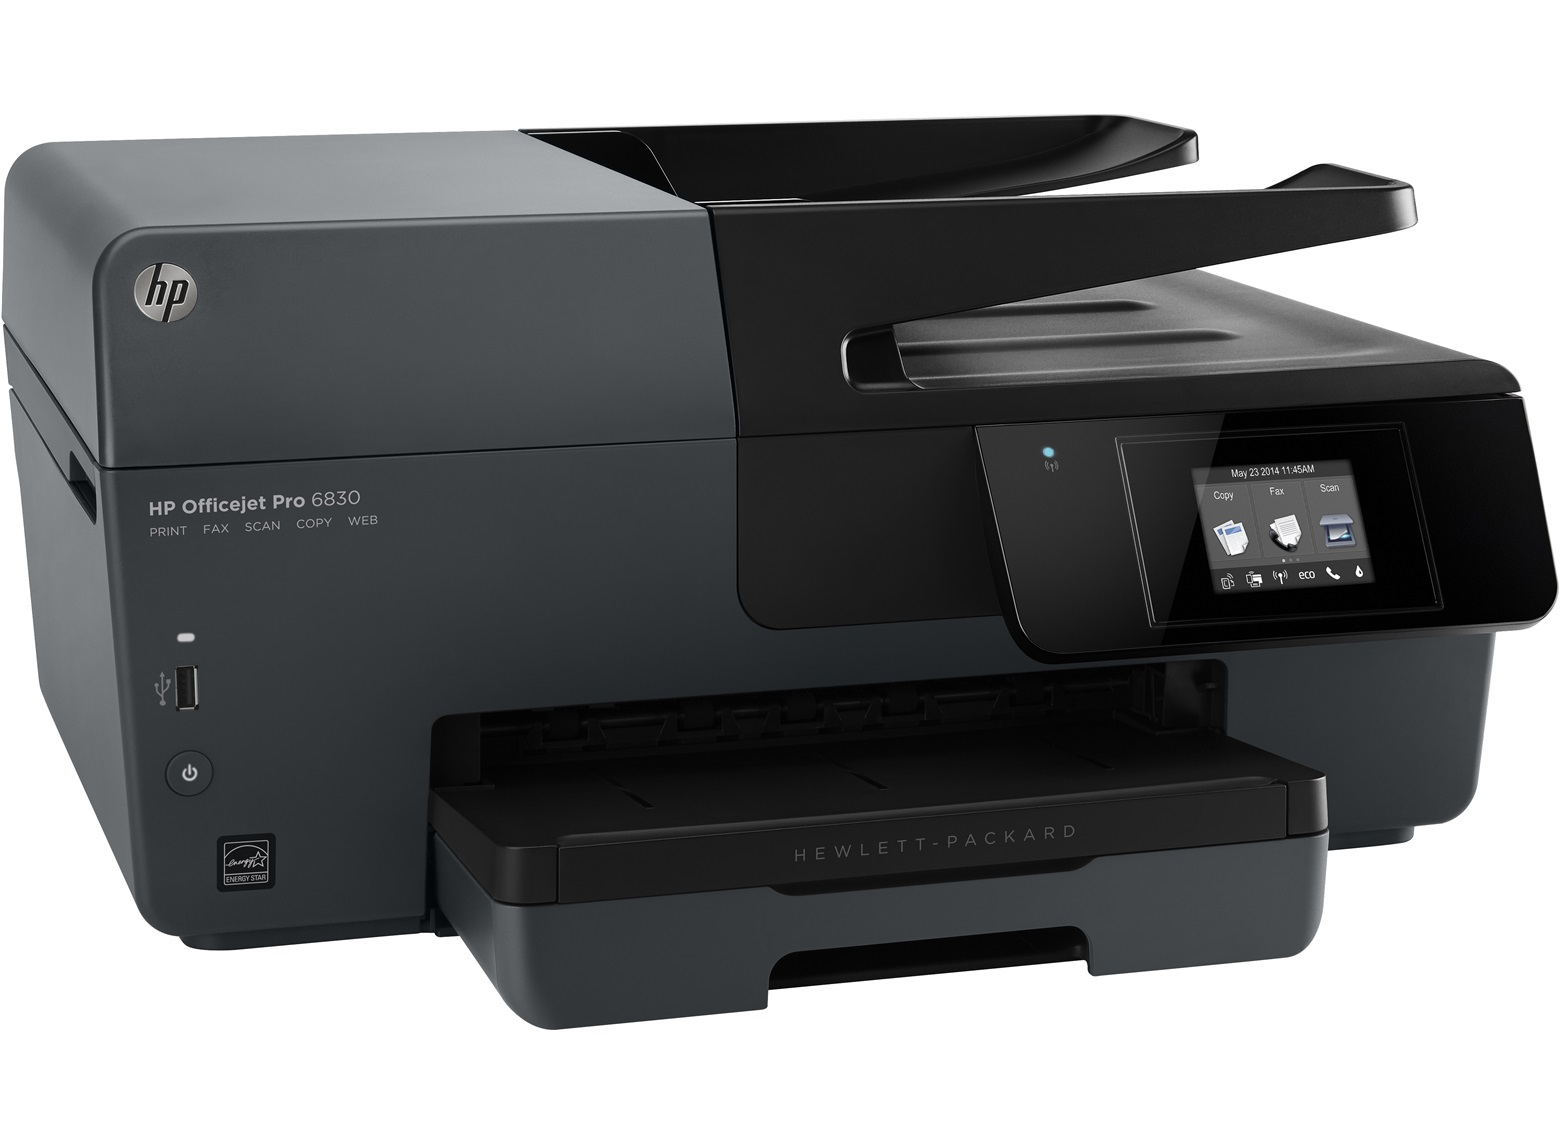 Imprimanta HP OfficeJet Pro 6830 – Cartuse Imprimanta